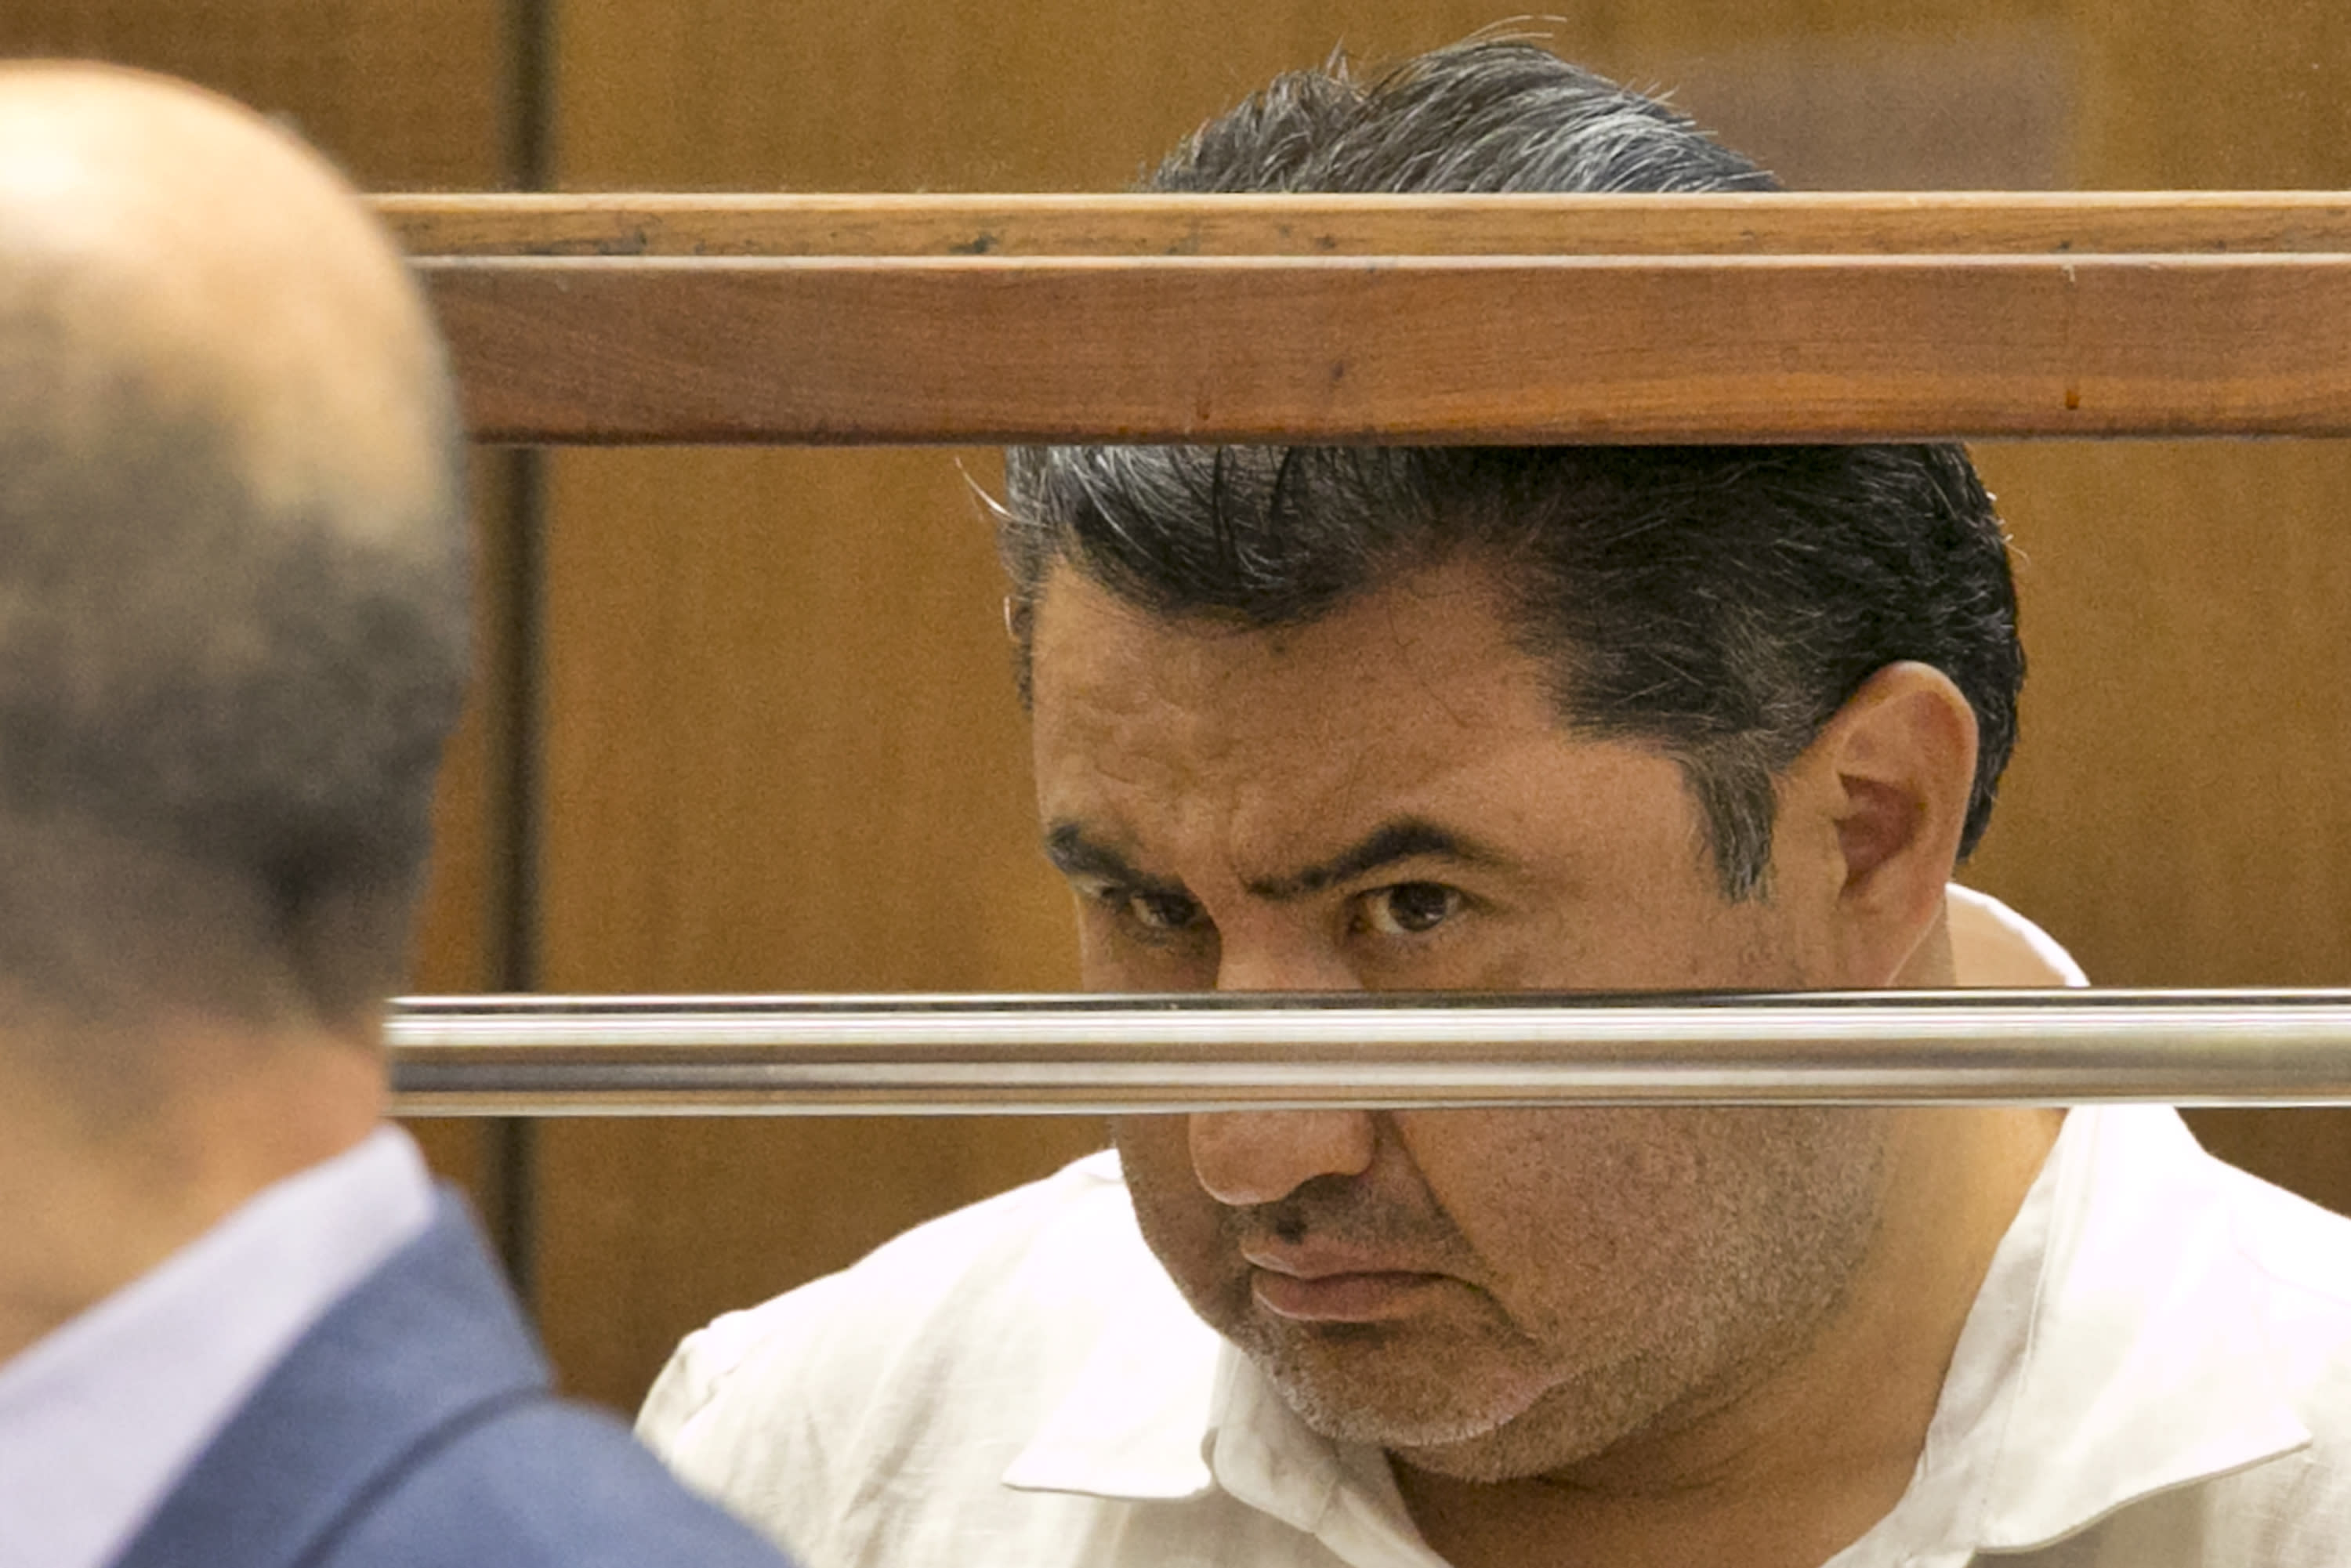 FILE - This June 5, 2019 file photo shows Naasón Joaquín García, the leader of fundamentalist Mexico-based church La Luz del Mundo, appearing in Los Angeles County Superior Court. On Tuesday, April 7, 2020 a California appeals court has dismissed the criminal case against the Mexican megachurch leader on charges of child rape and human trafficking. The case was dismissed on procedural grounds. García, the self-proclaimed apostle of La Luz del Mundo, has been in custody since June. He is currently being held without bail in Los Angeles. The attorney general's office said it was reviewing the court's ruling. (AP Photo/Damian Dovarganes, File)